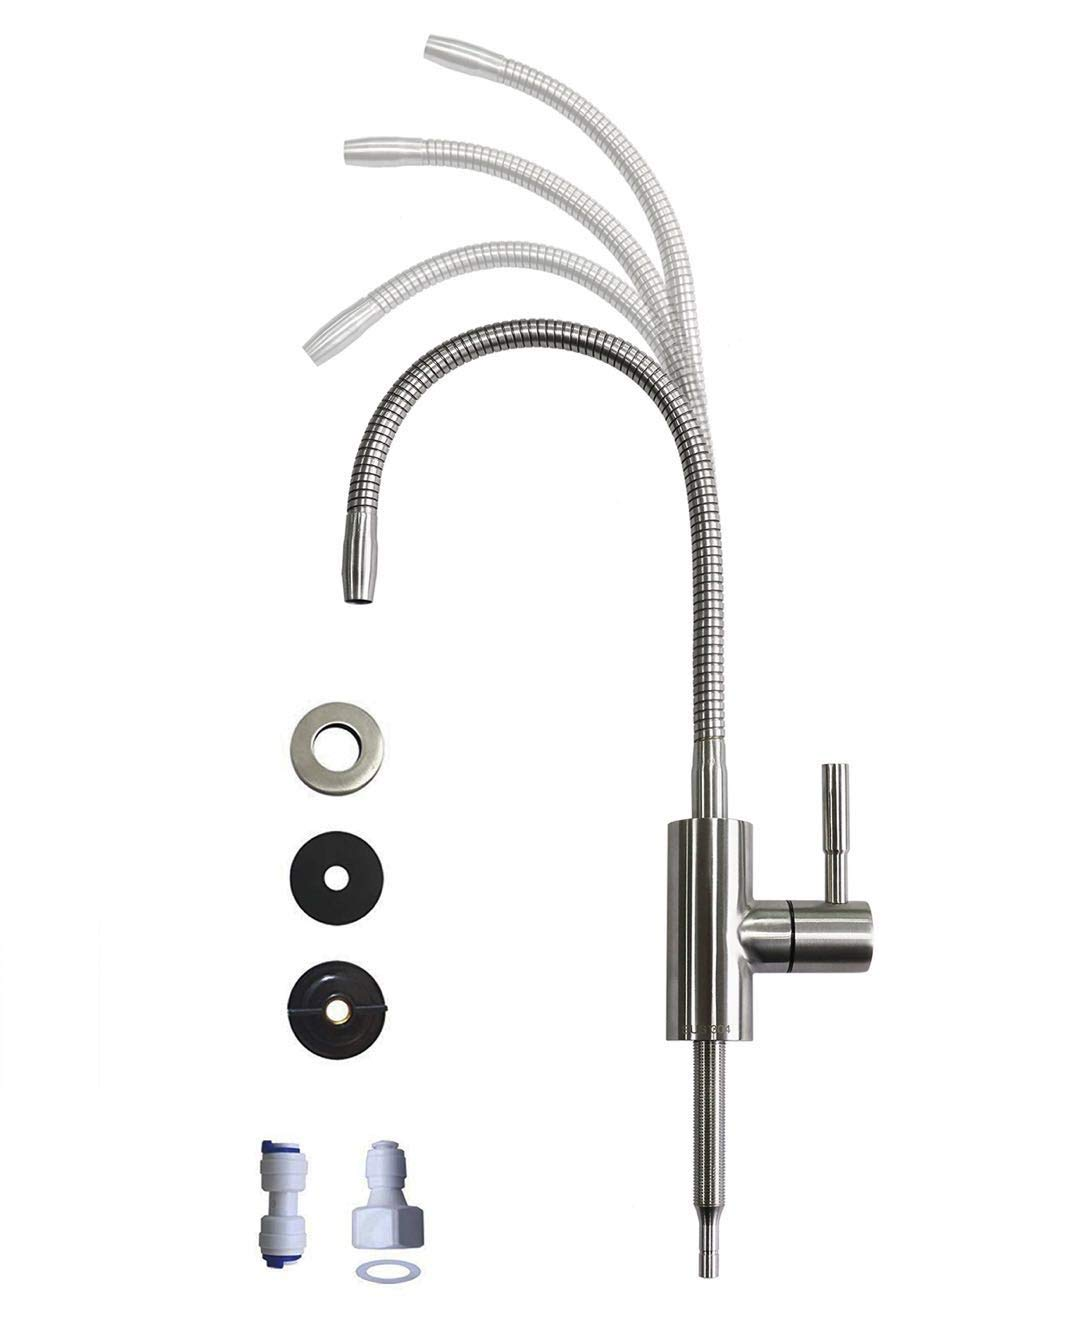 Drinking Water Faucet with Flexible Gooseneck - 360 Degree Rotatable Sink Faucet Drinking Water Purifier Faucet, Cold Water Faucet Single Handle - Brushed Stainless Steel